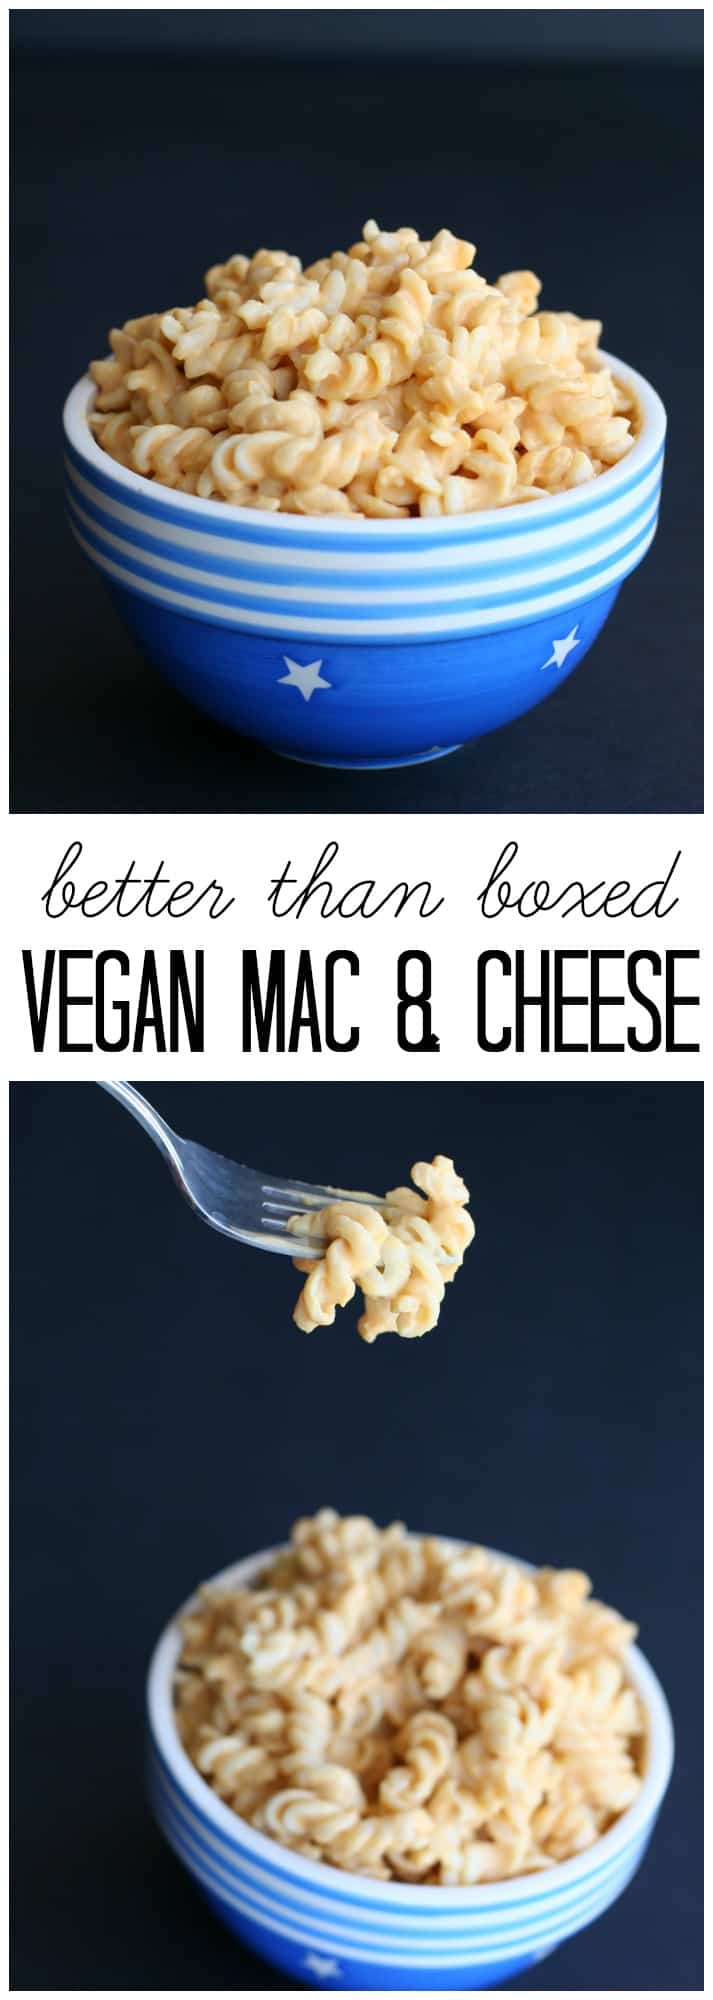 Whether you eat vegan, gluten or dairy free, or a traditional diet, this is one macaroni and cheese recipe your kids will absolutely LOVE.